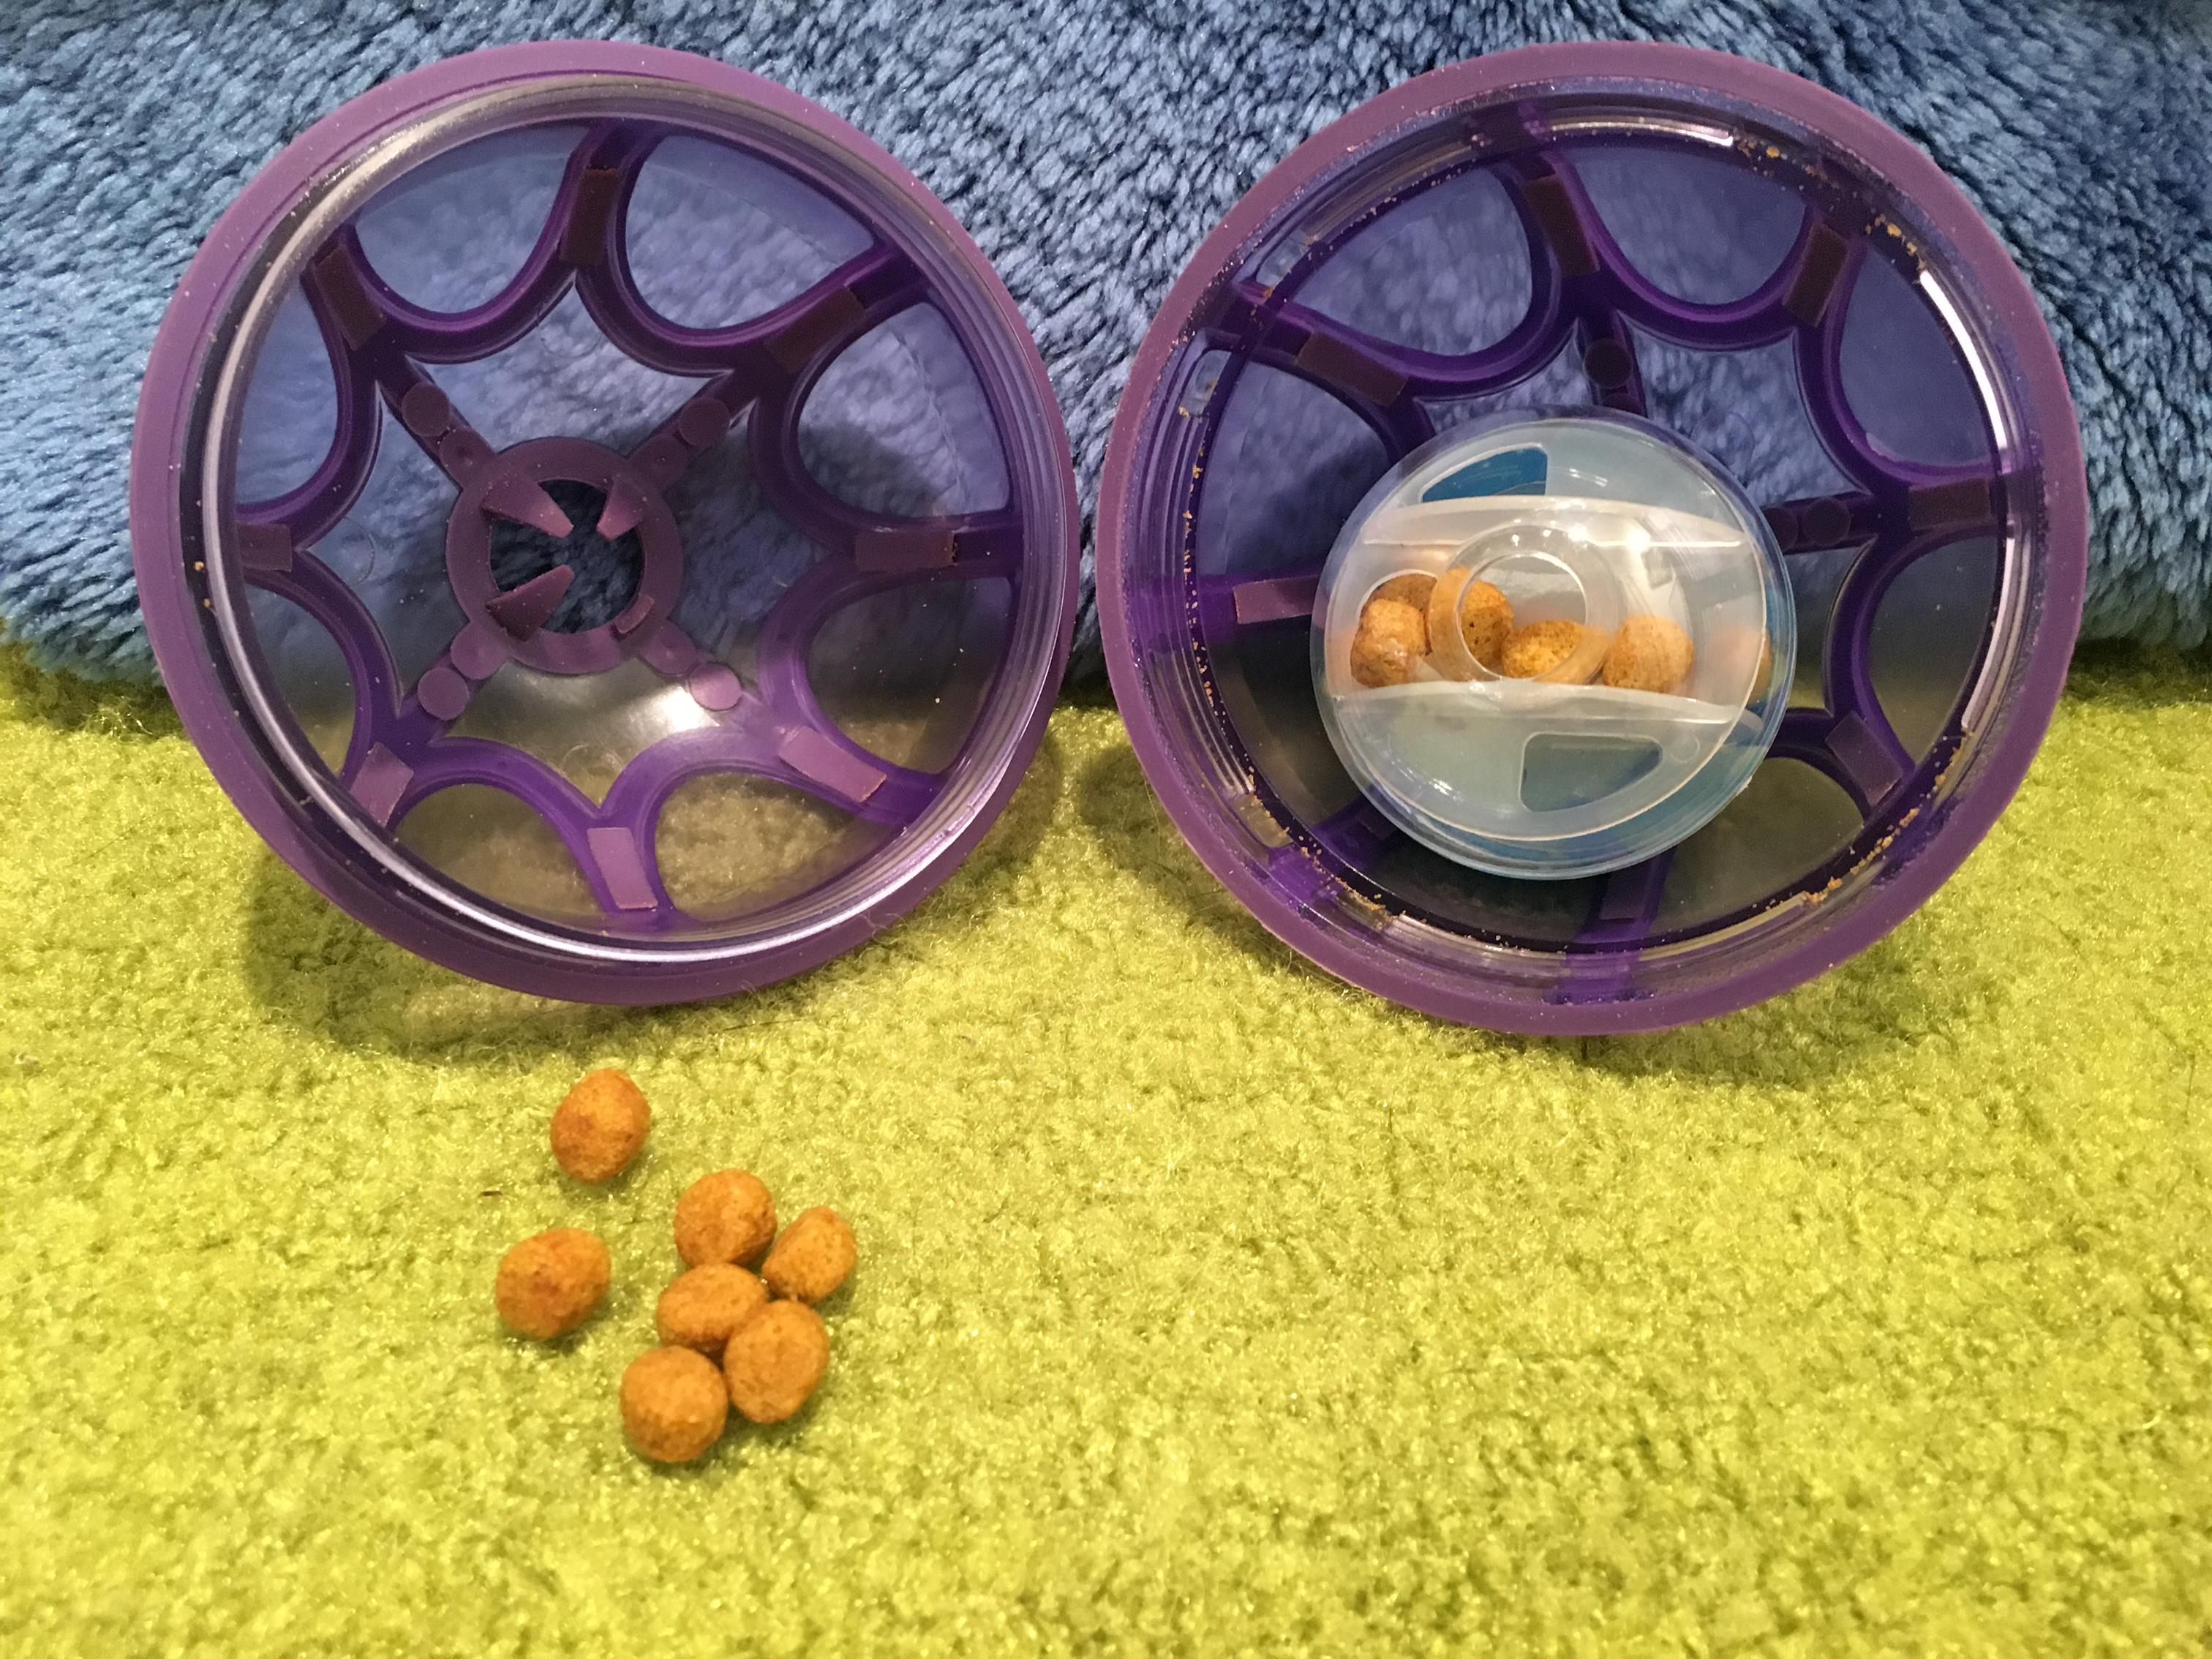 Add to the Busy Buddy Kibble Nibble foraging toy.